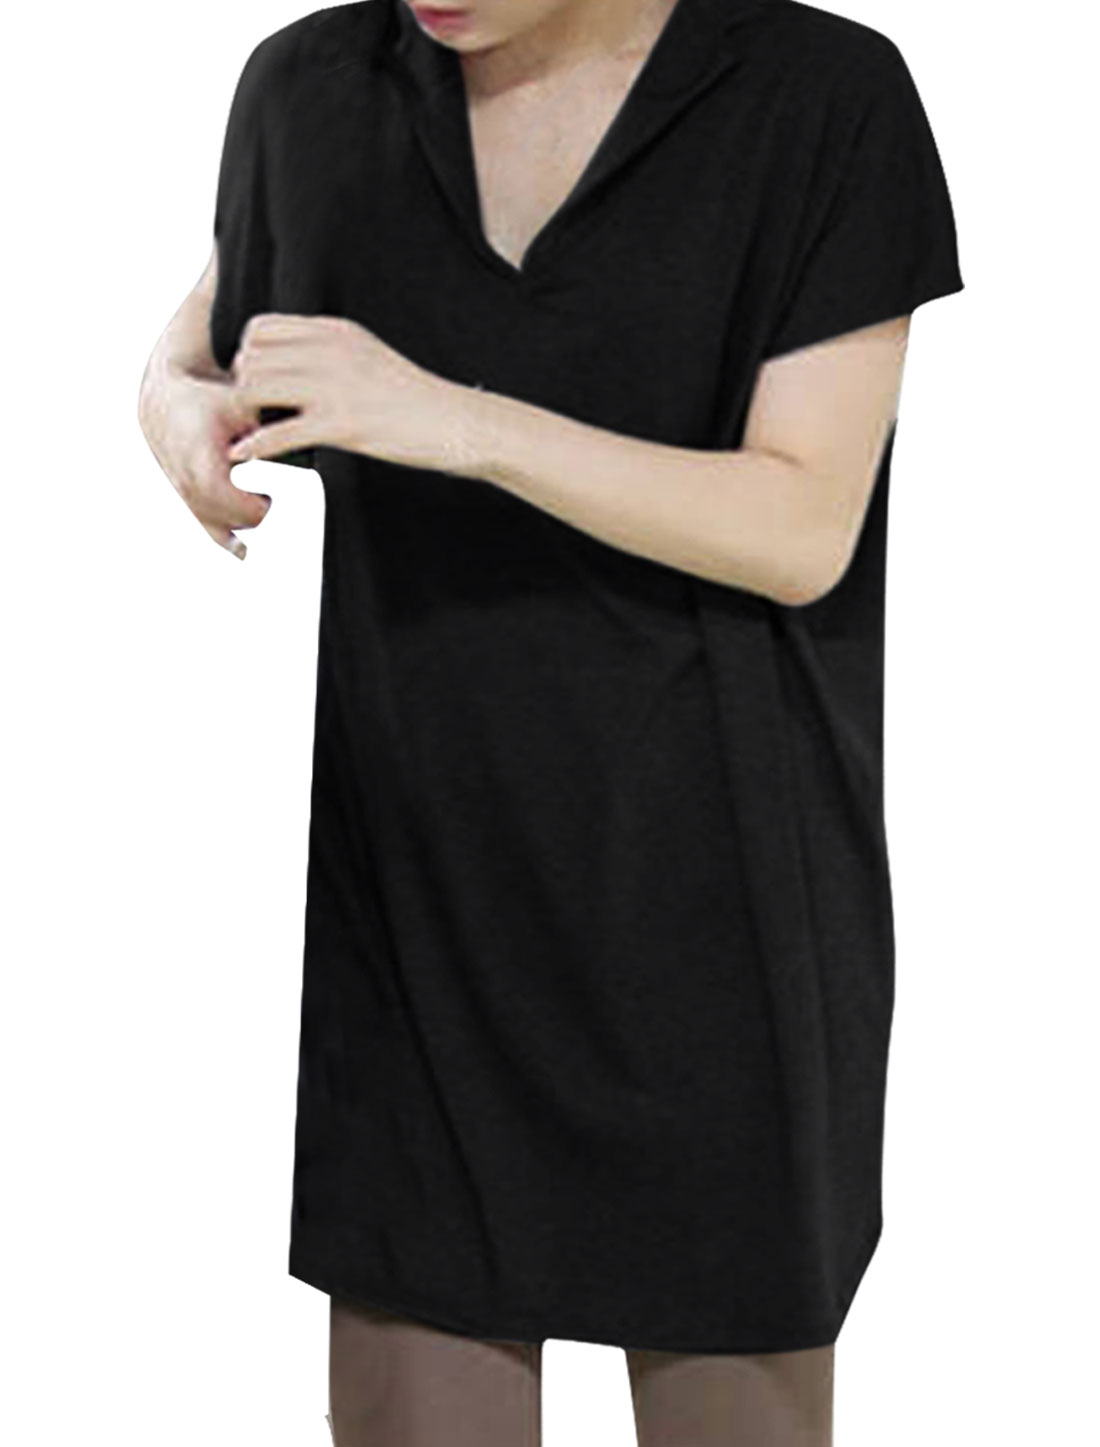 Woman Split Neck Short Dolman Sleeve Design Pure Black Loose Top Shirt M